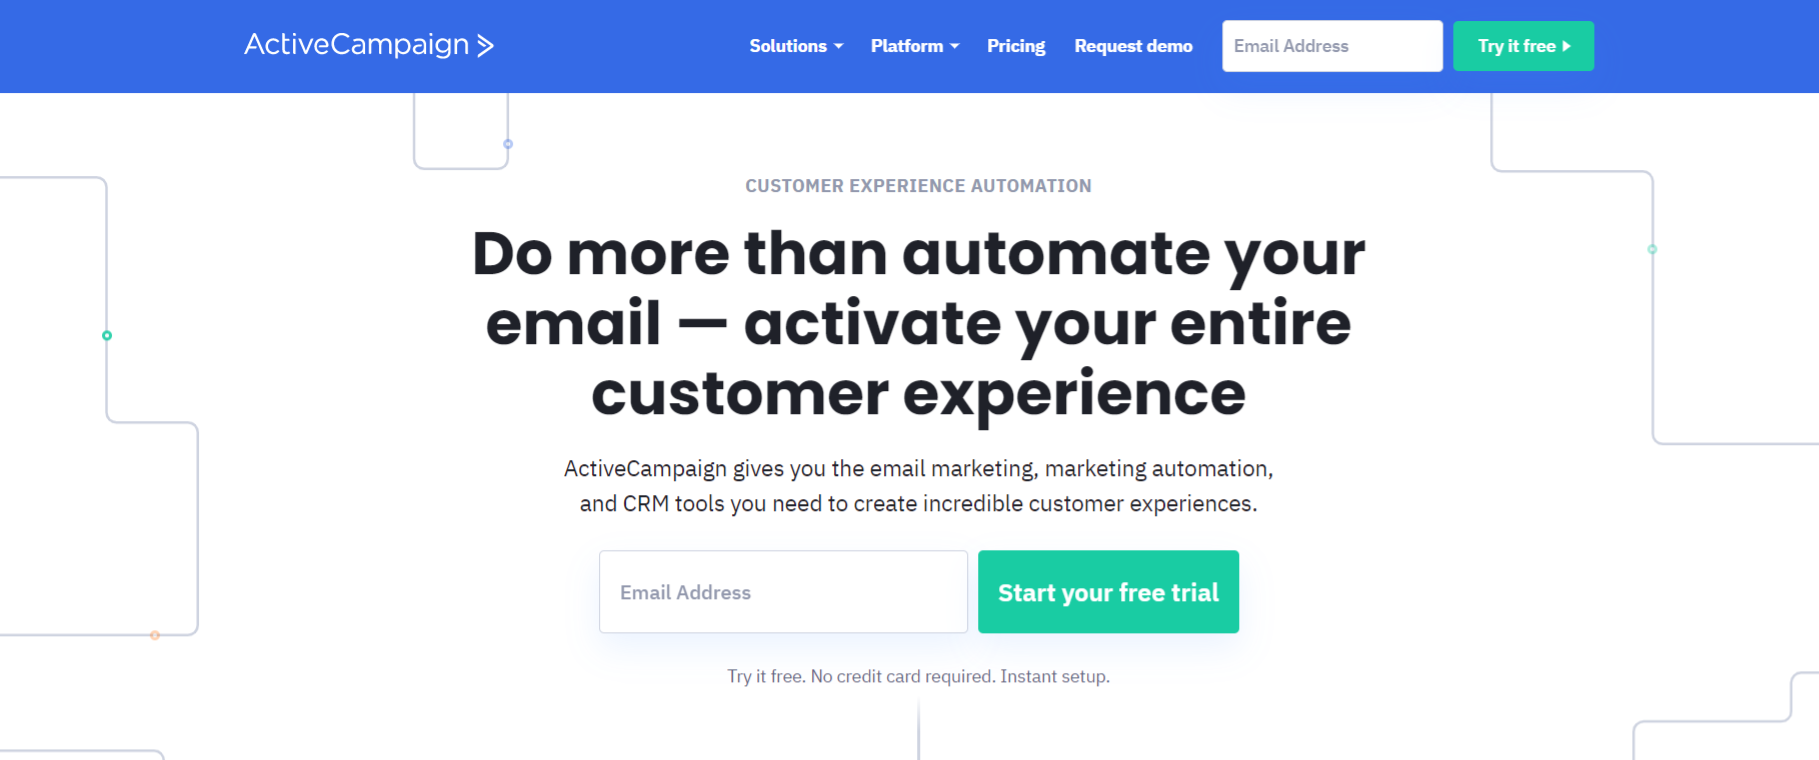 Activecampaign: Email marketing software